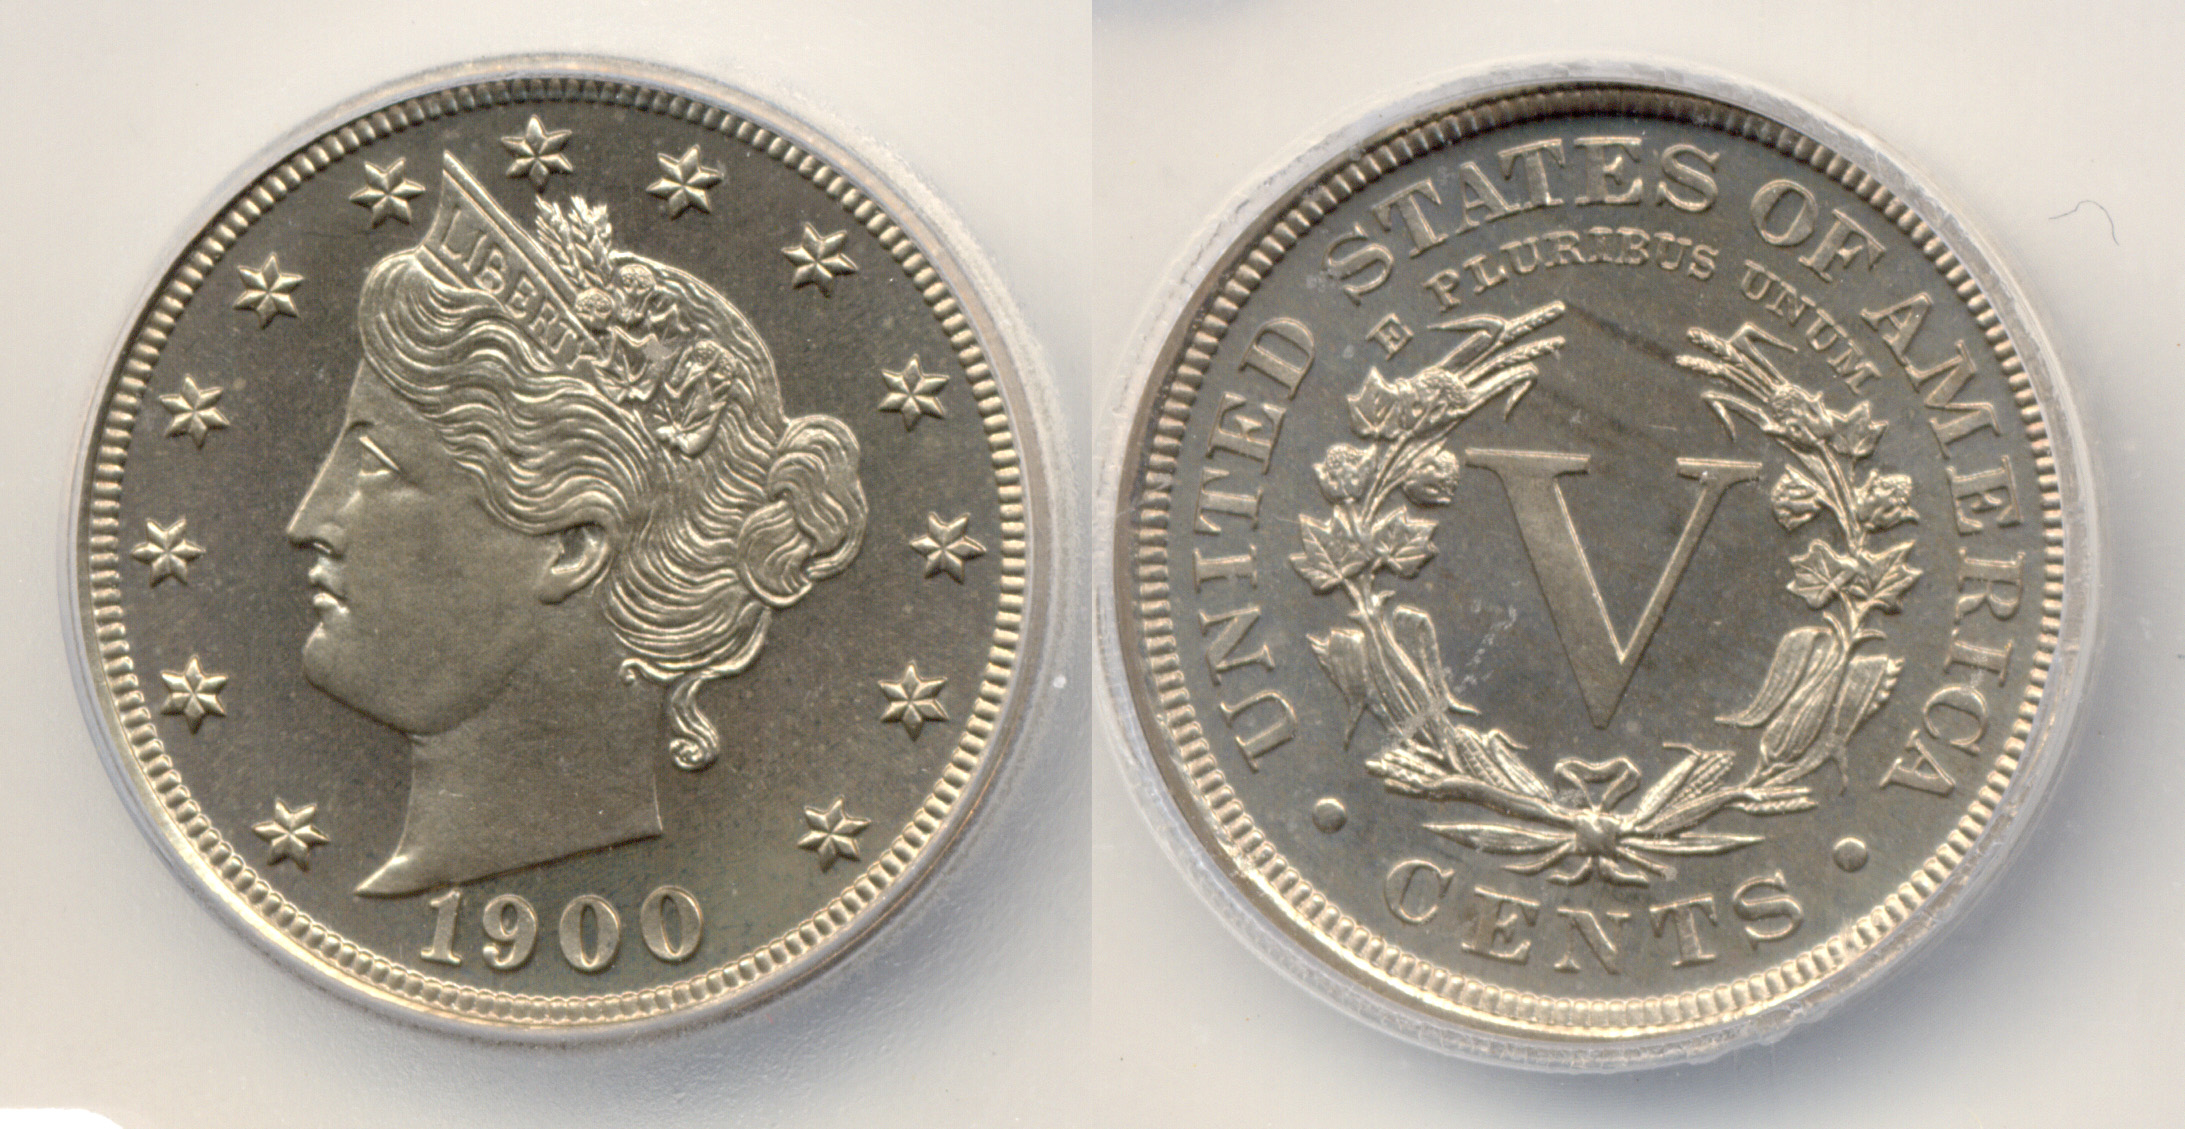 Us Nickel Or Half Dime Coin From 1900 Usa Five Cent Piece